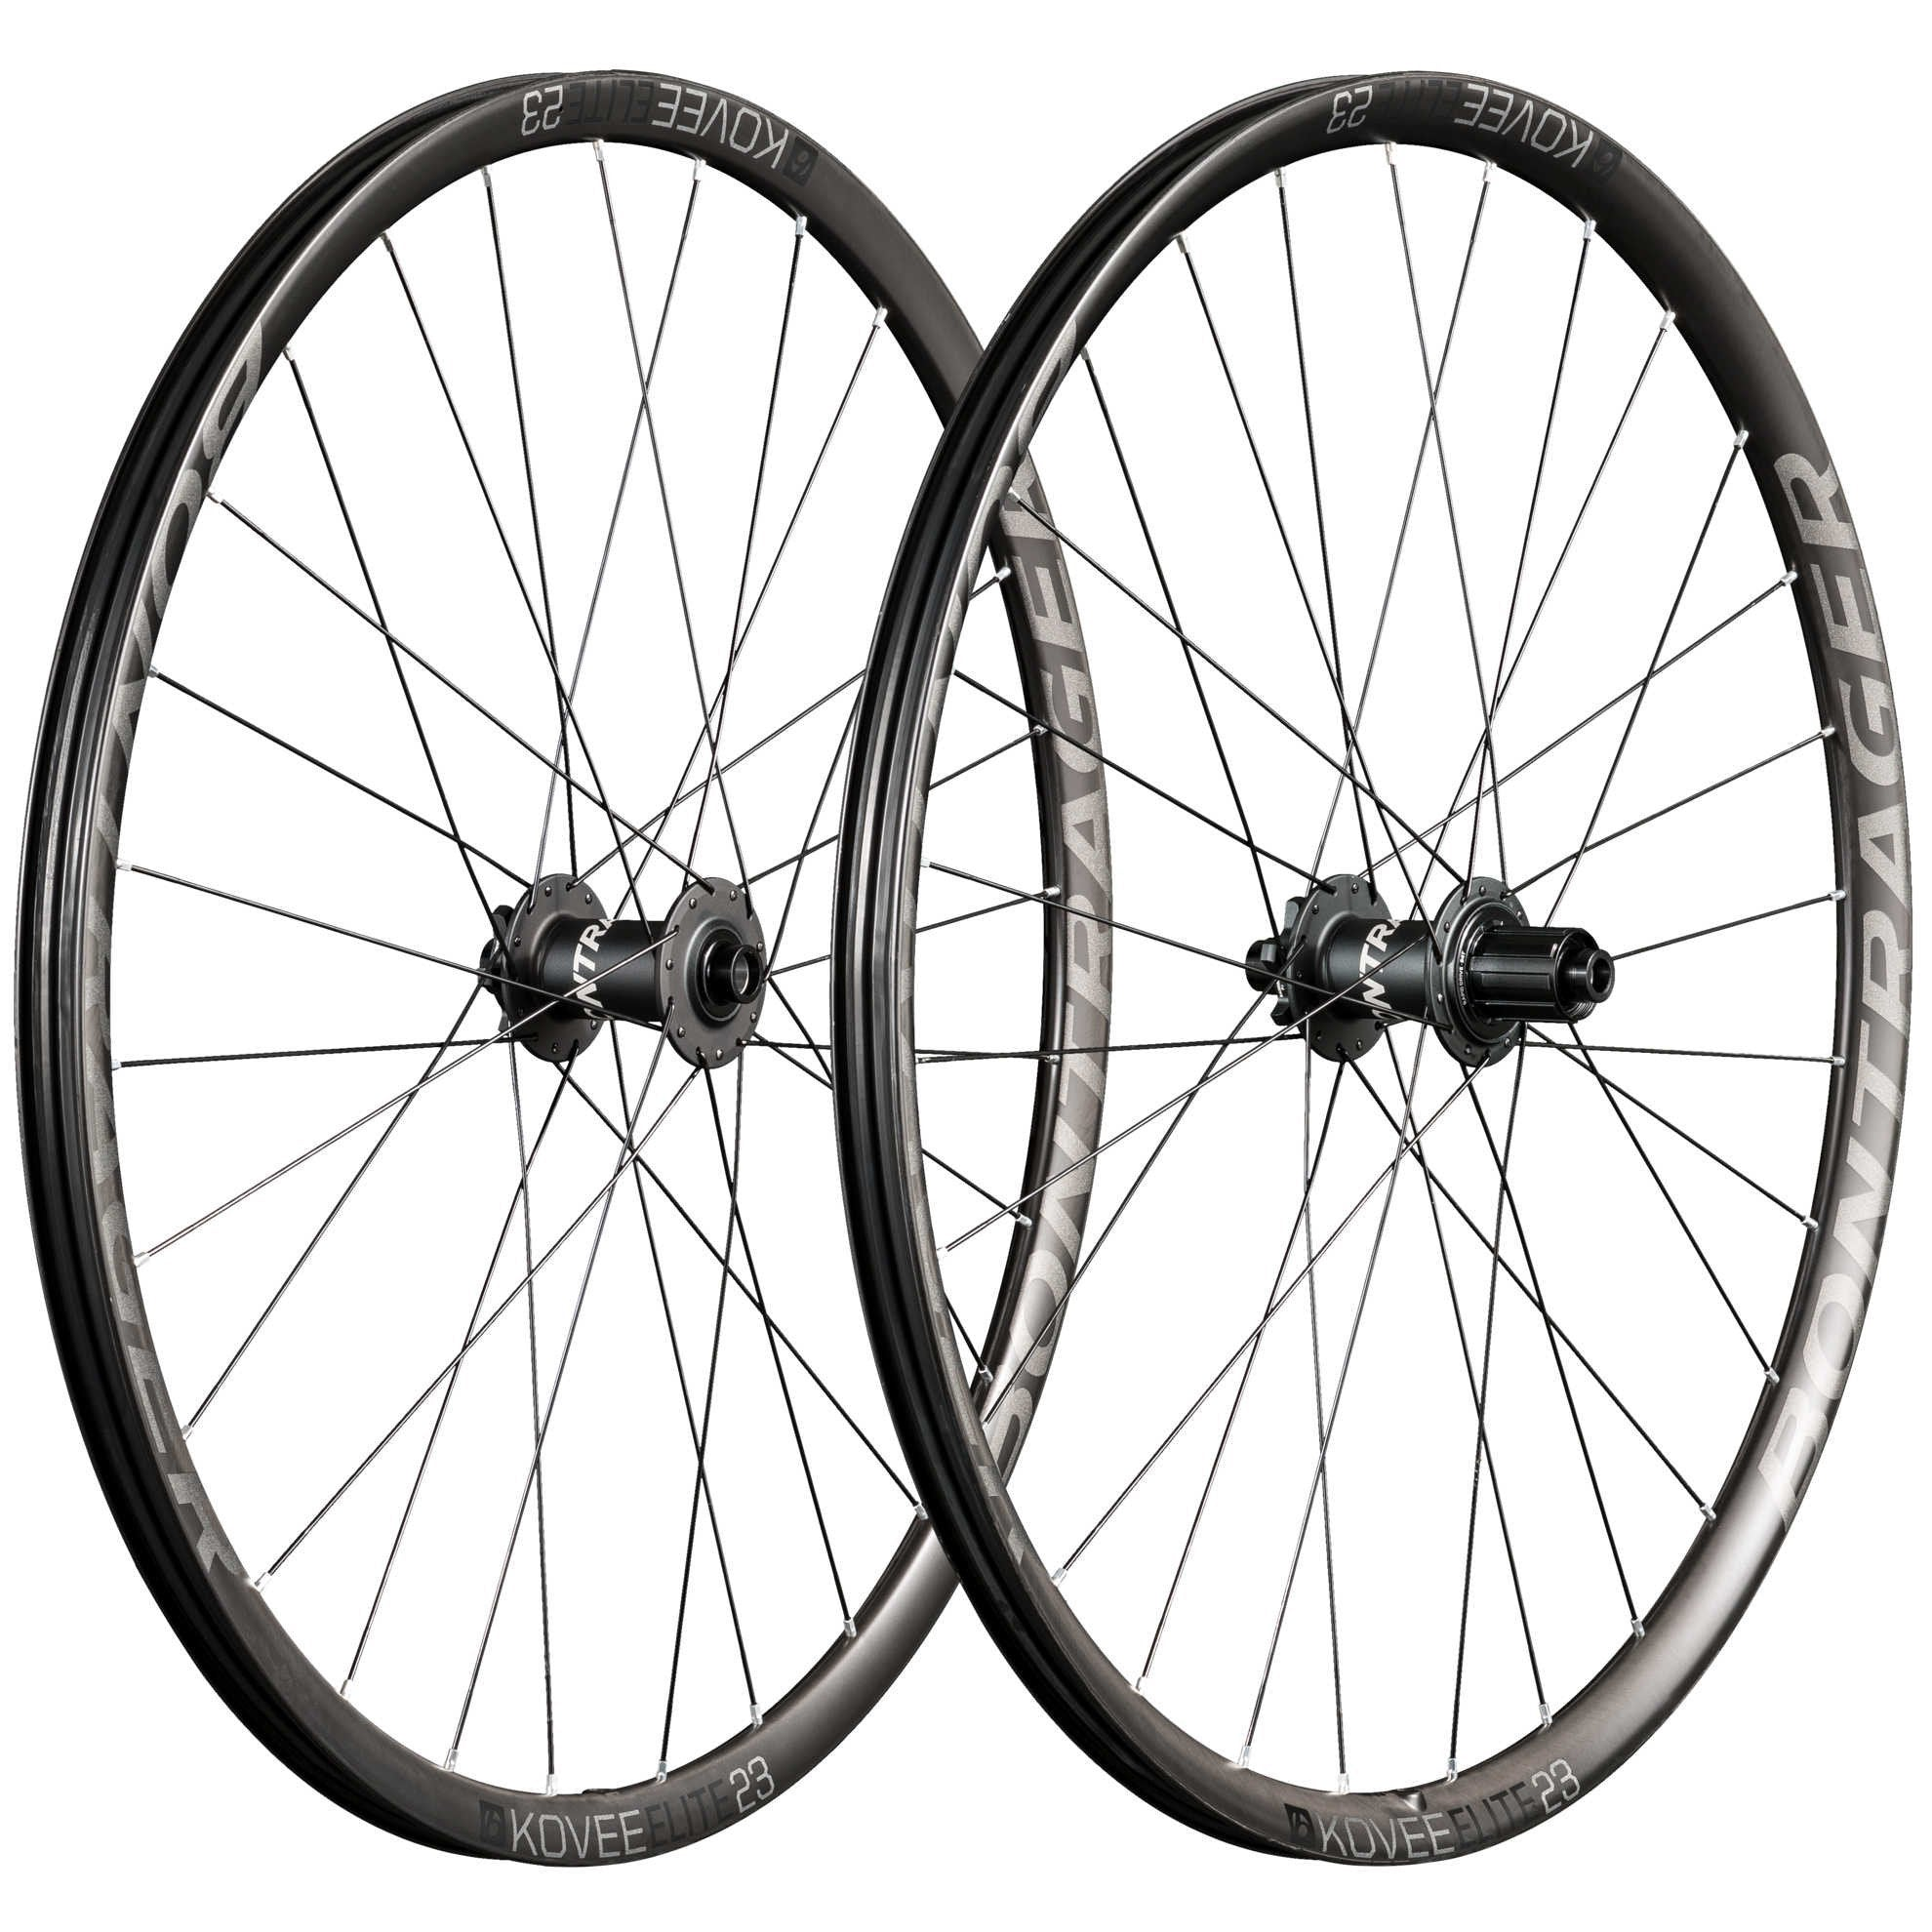 Bontrager Kovee Elite 23 Carbon Boost Wheels - Cycles Galleria Melbourne